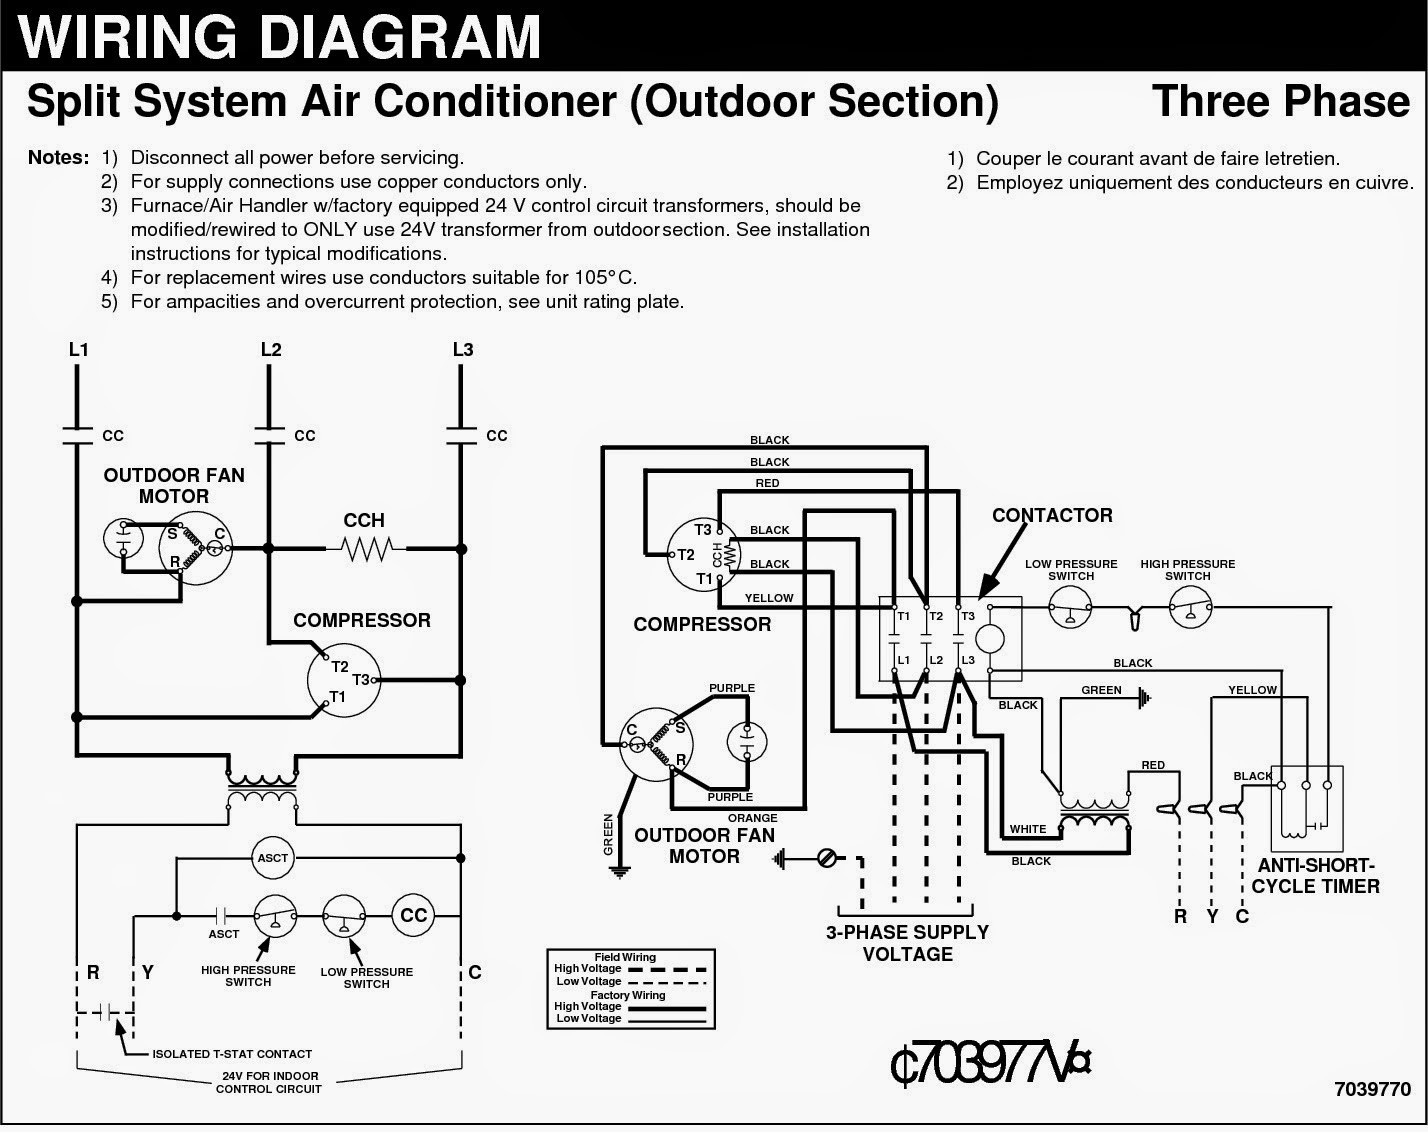 Gree Air Conditioner Wiring Diagram : Electrical wiring diagrams for air conditioning systems